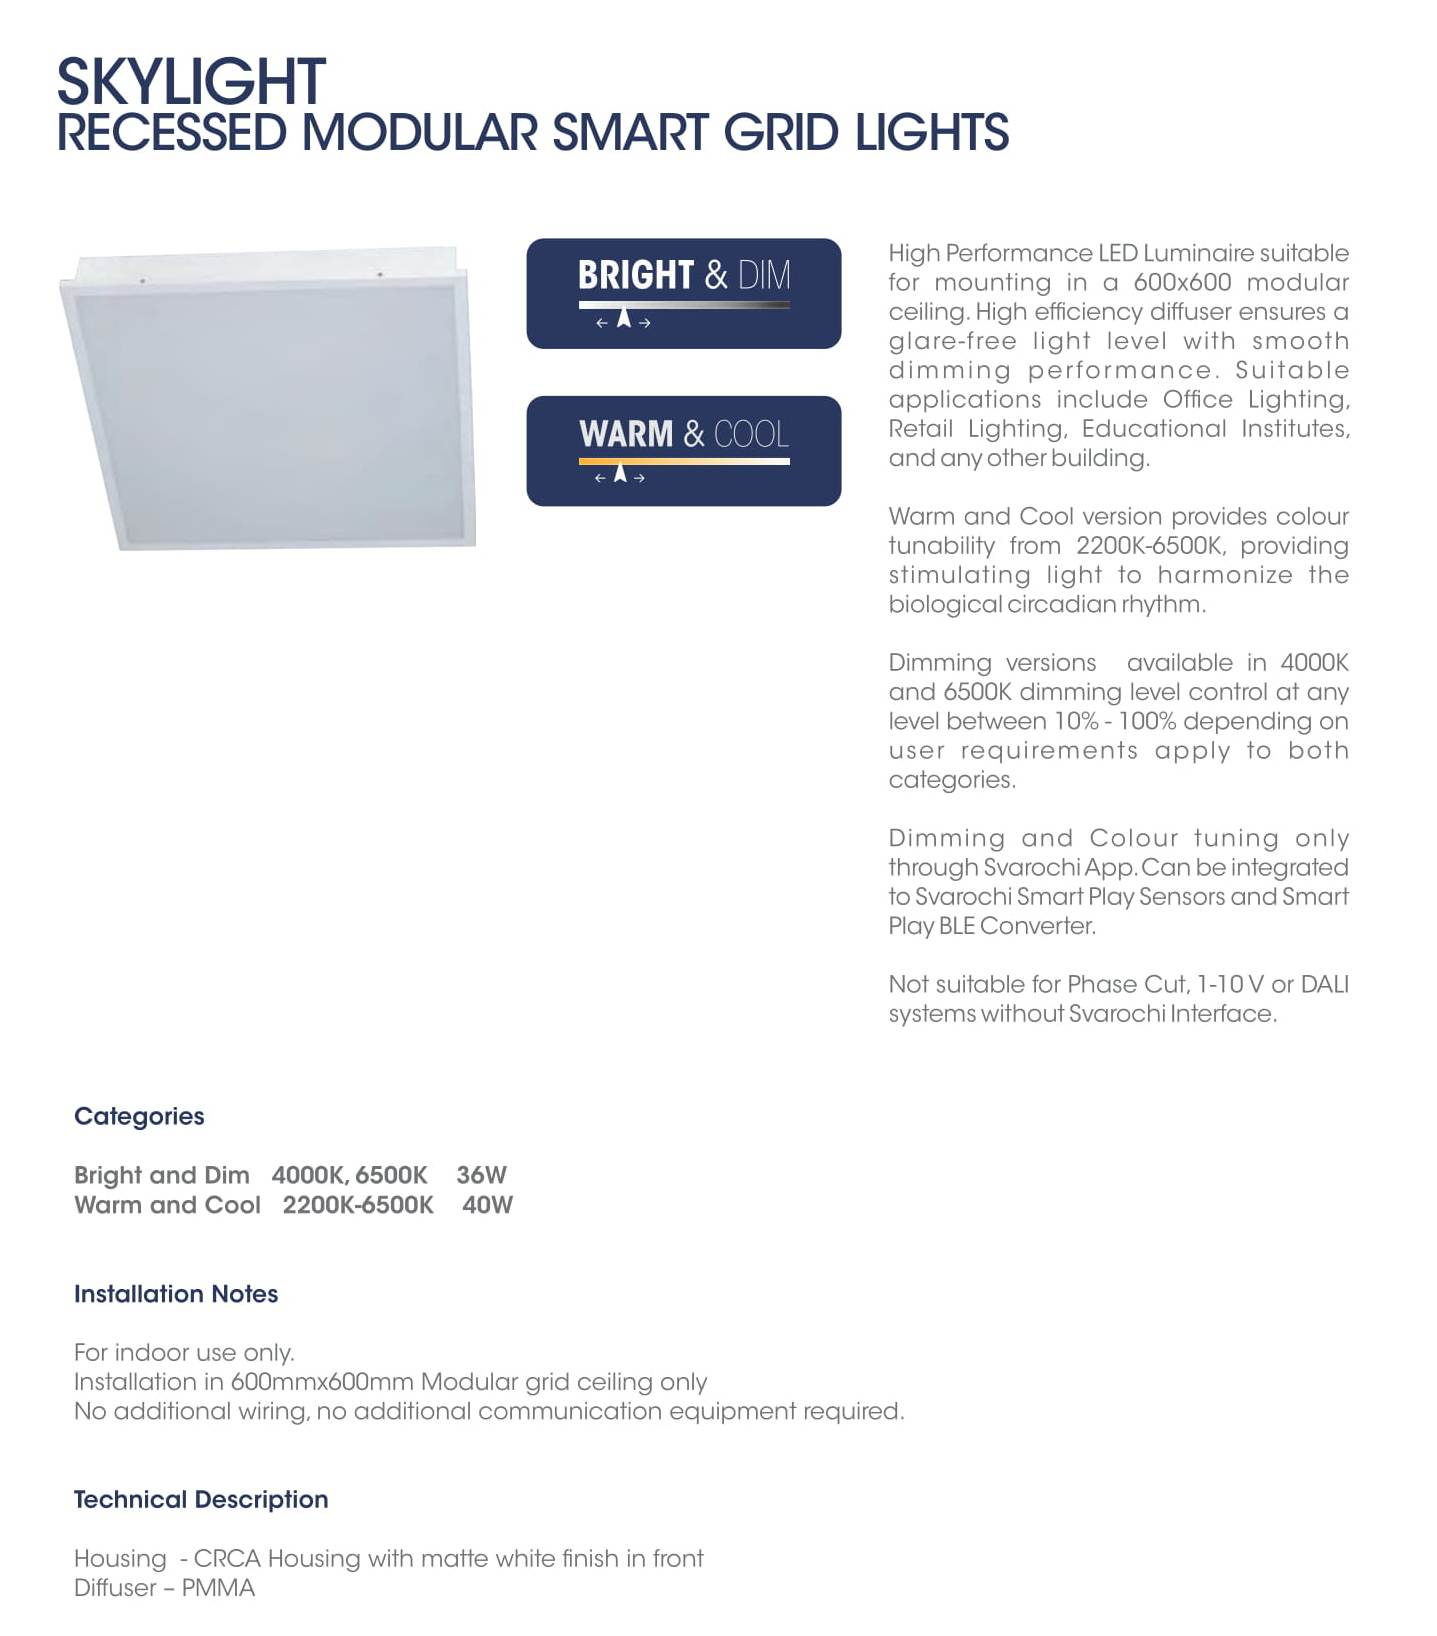 Skylight Recessed Modular Smart Grid Light